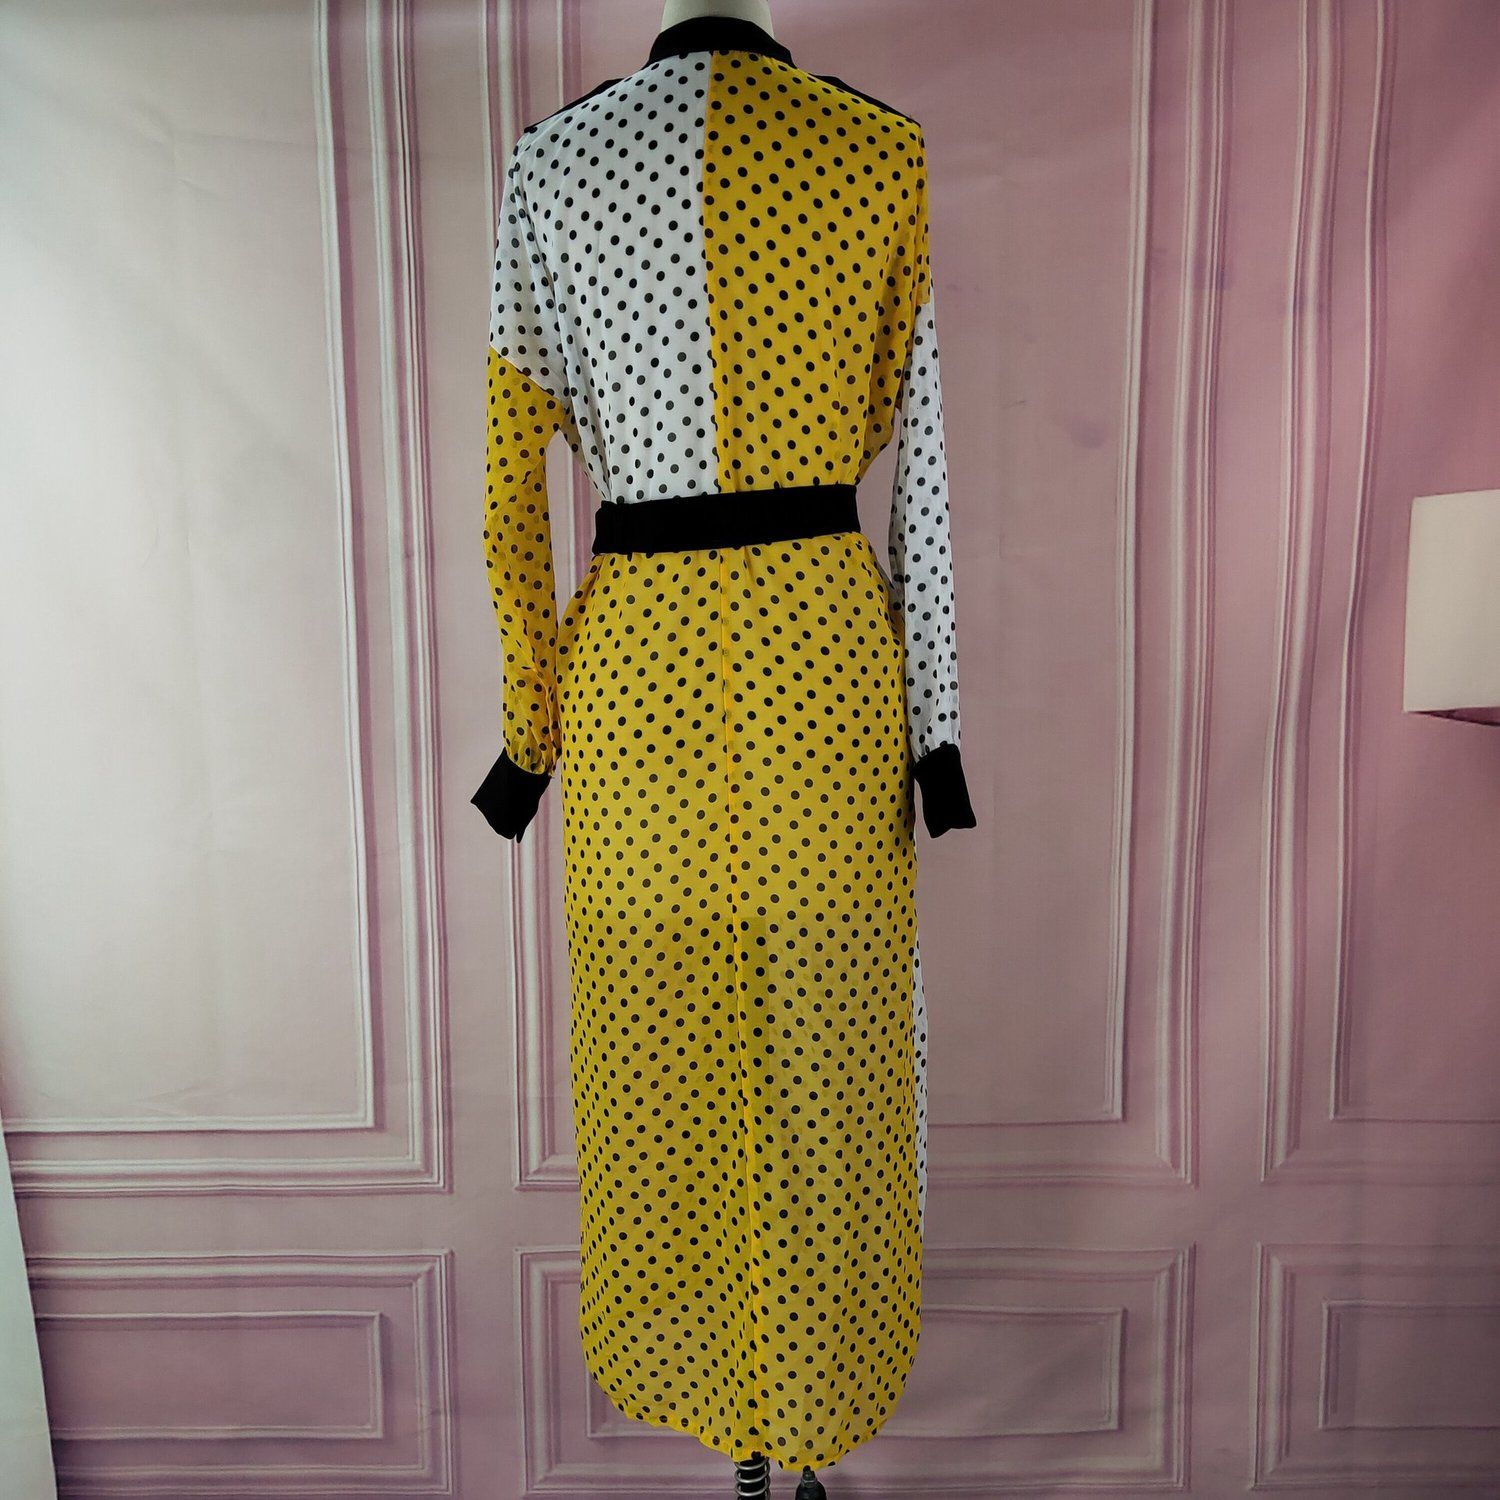 DEAT 2021 New Autumn And Summer Turn-down Collar Full Sleeves Polka Dots Printed Contrast Colors Shirt Dress WJ77807XXL